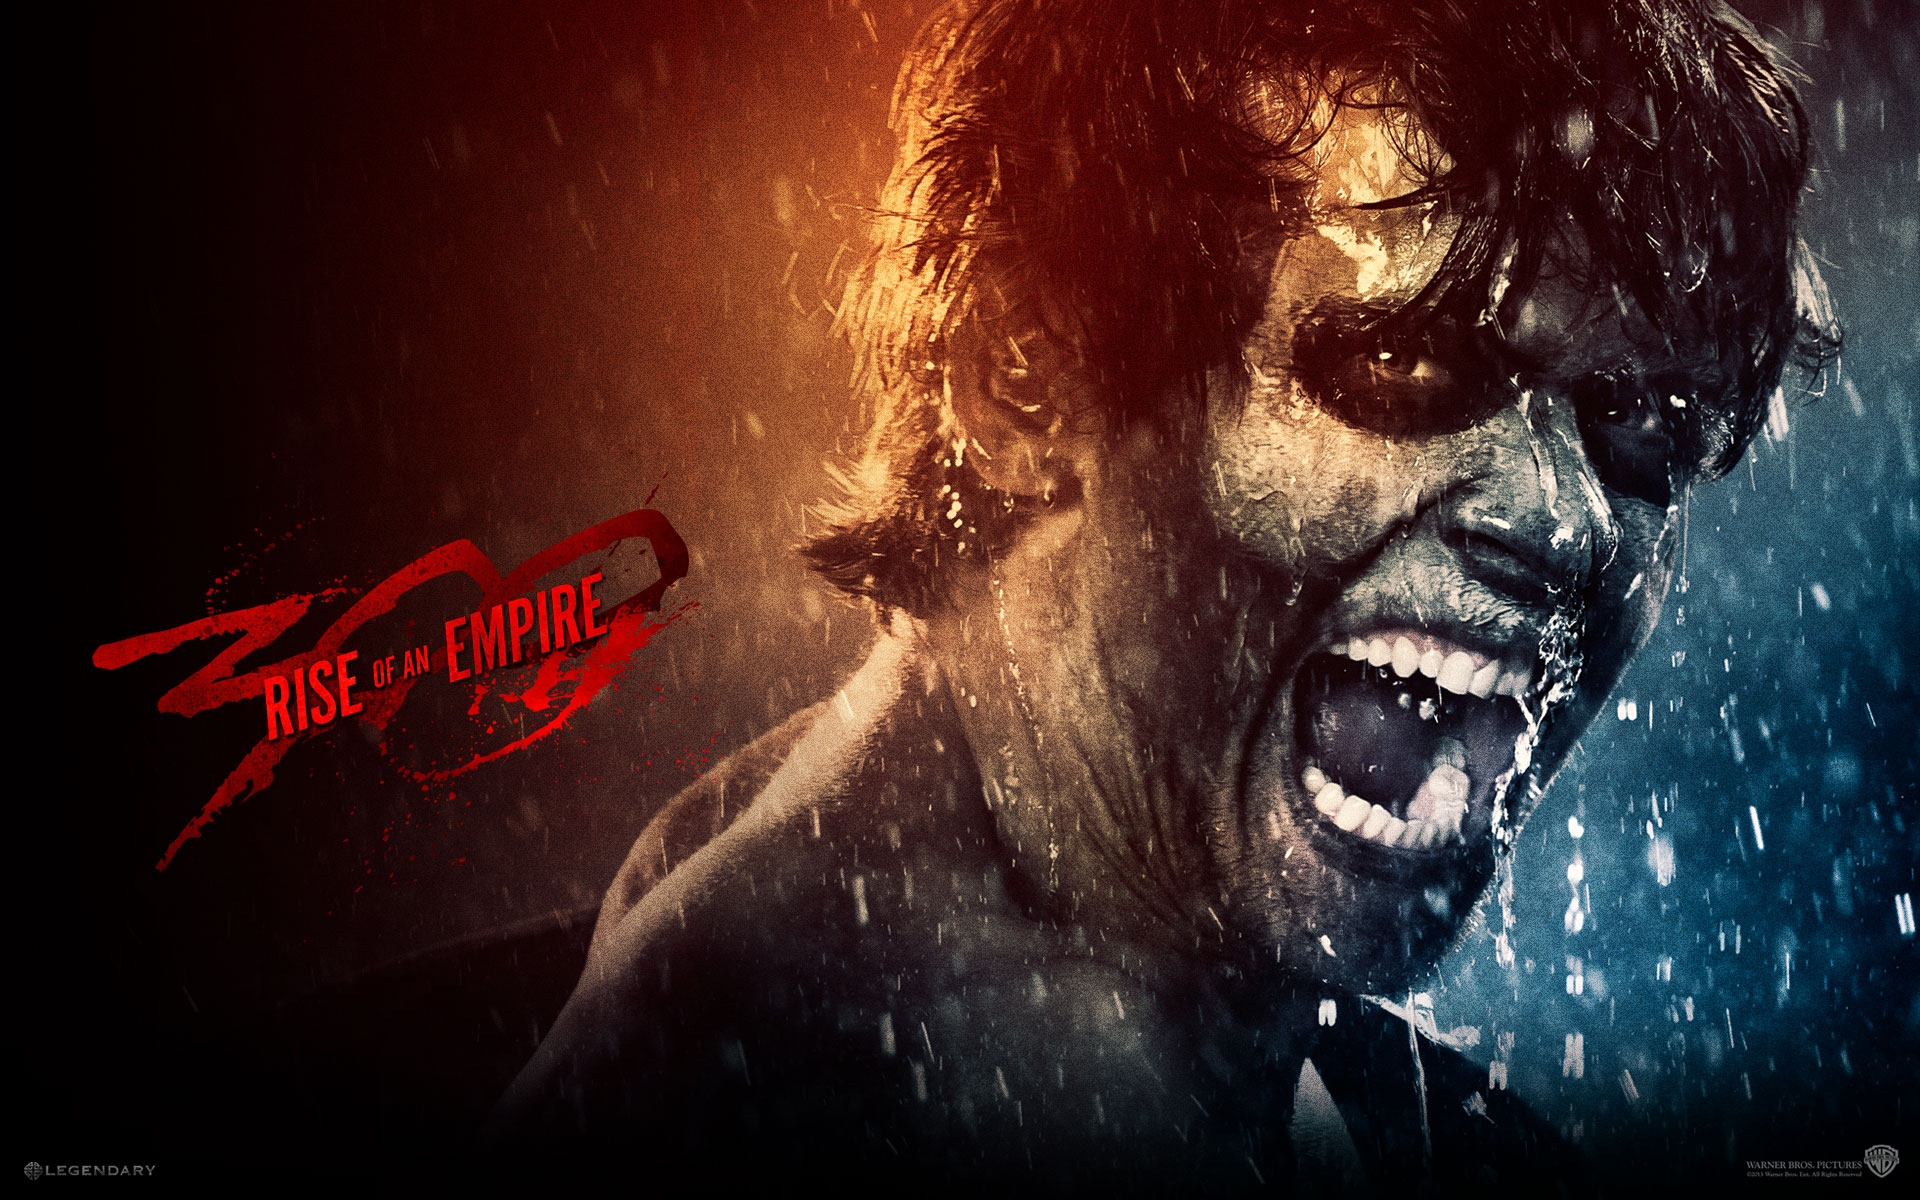 1920x1200 - 300: Rise of an Empire Wallpapers 9